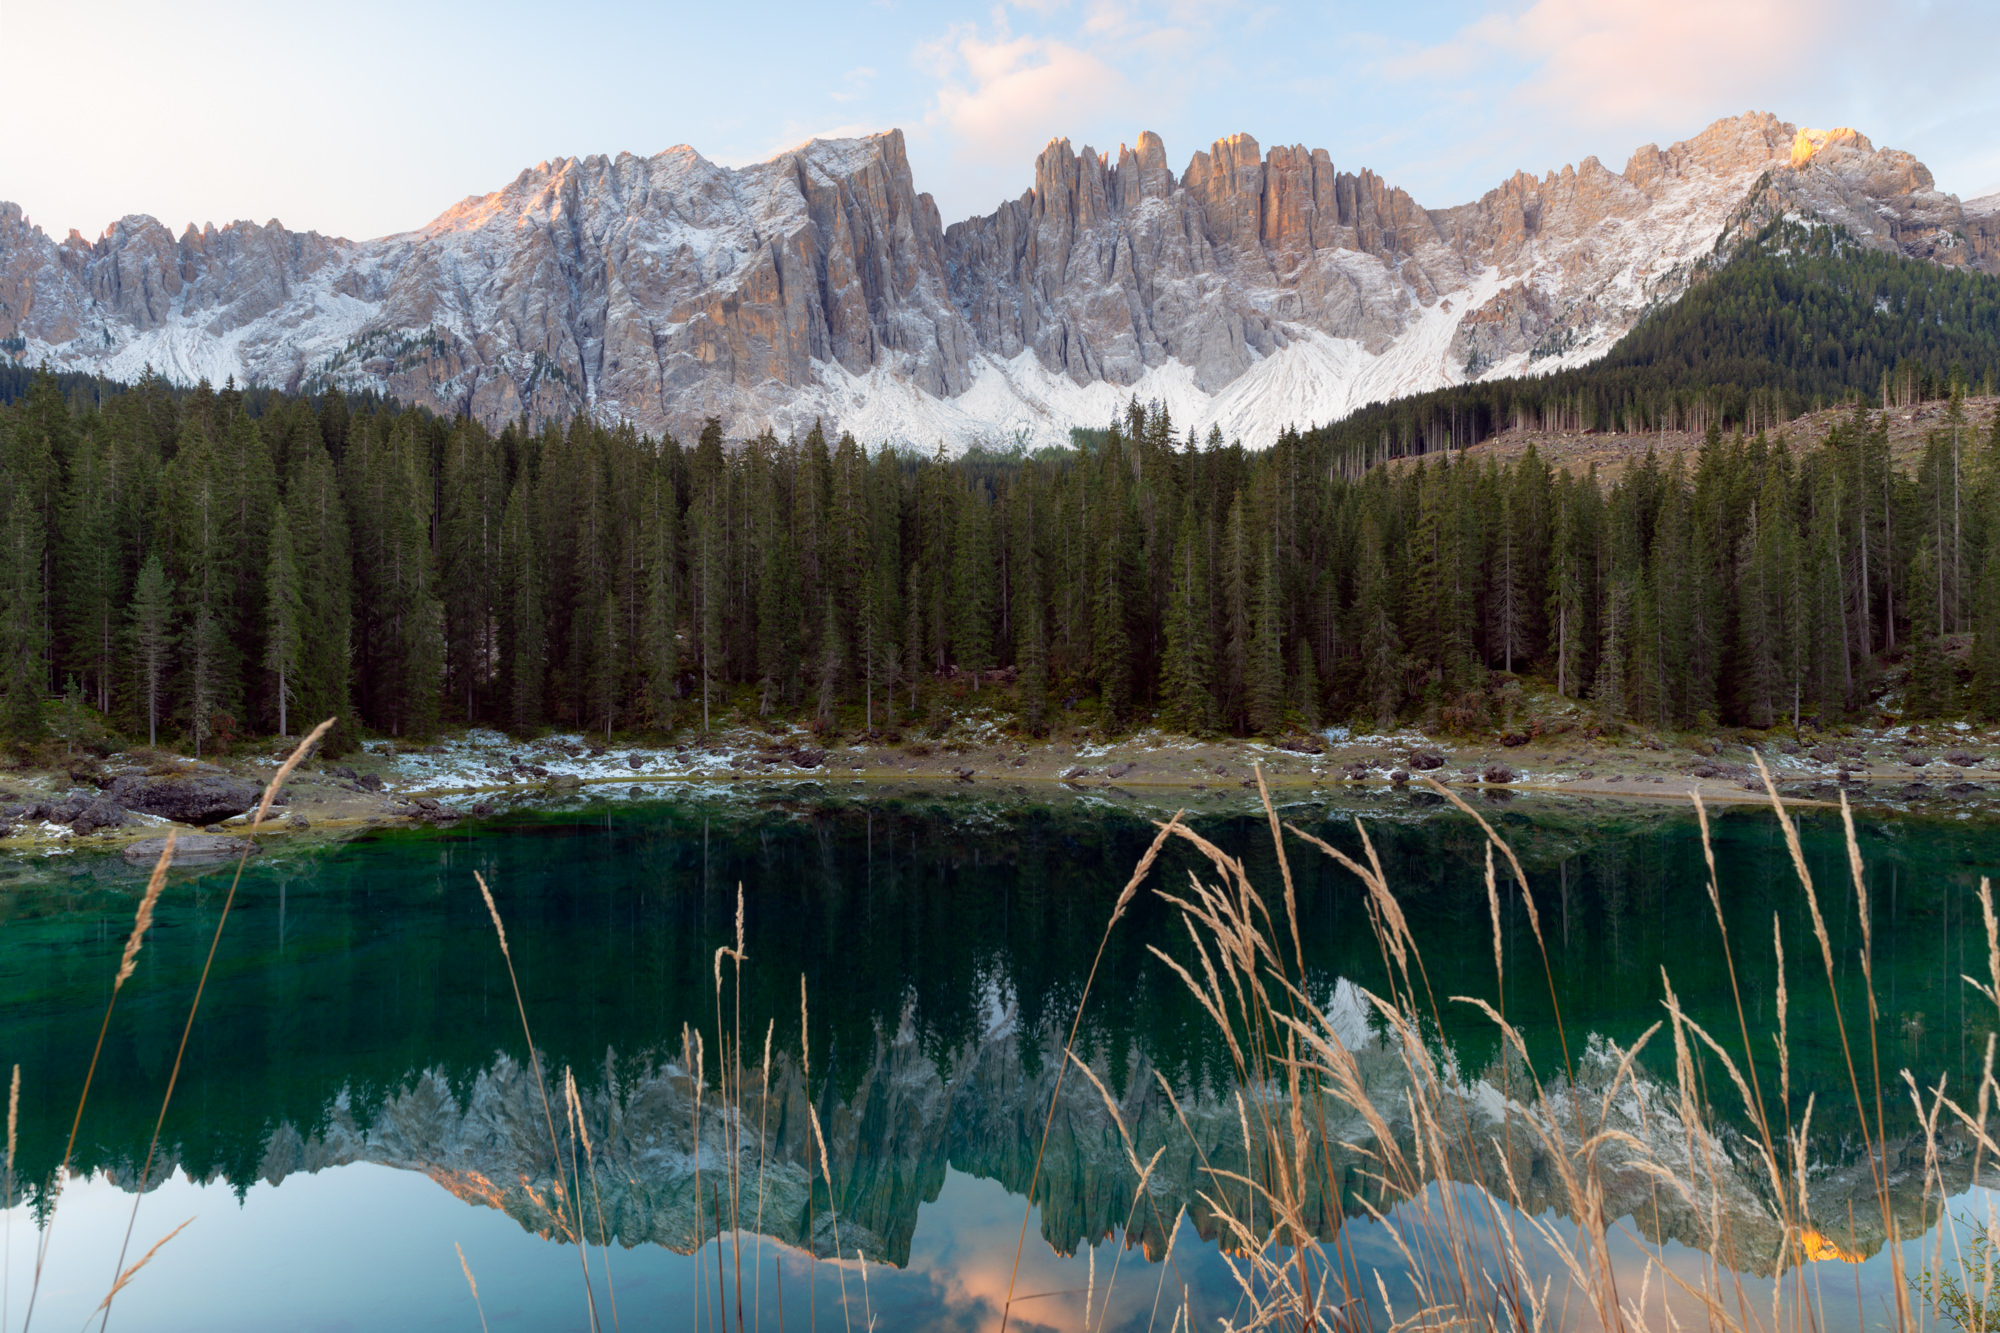 Sunrise at Lago di Carezza